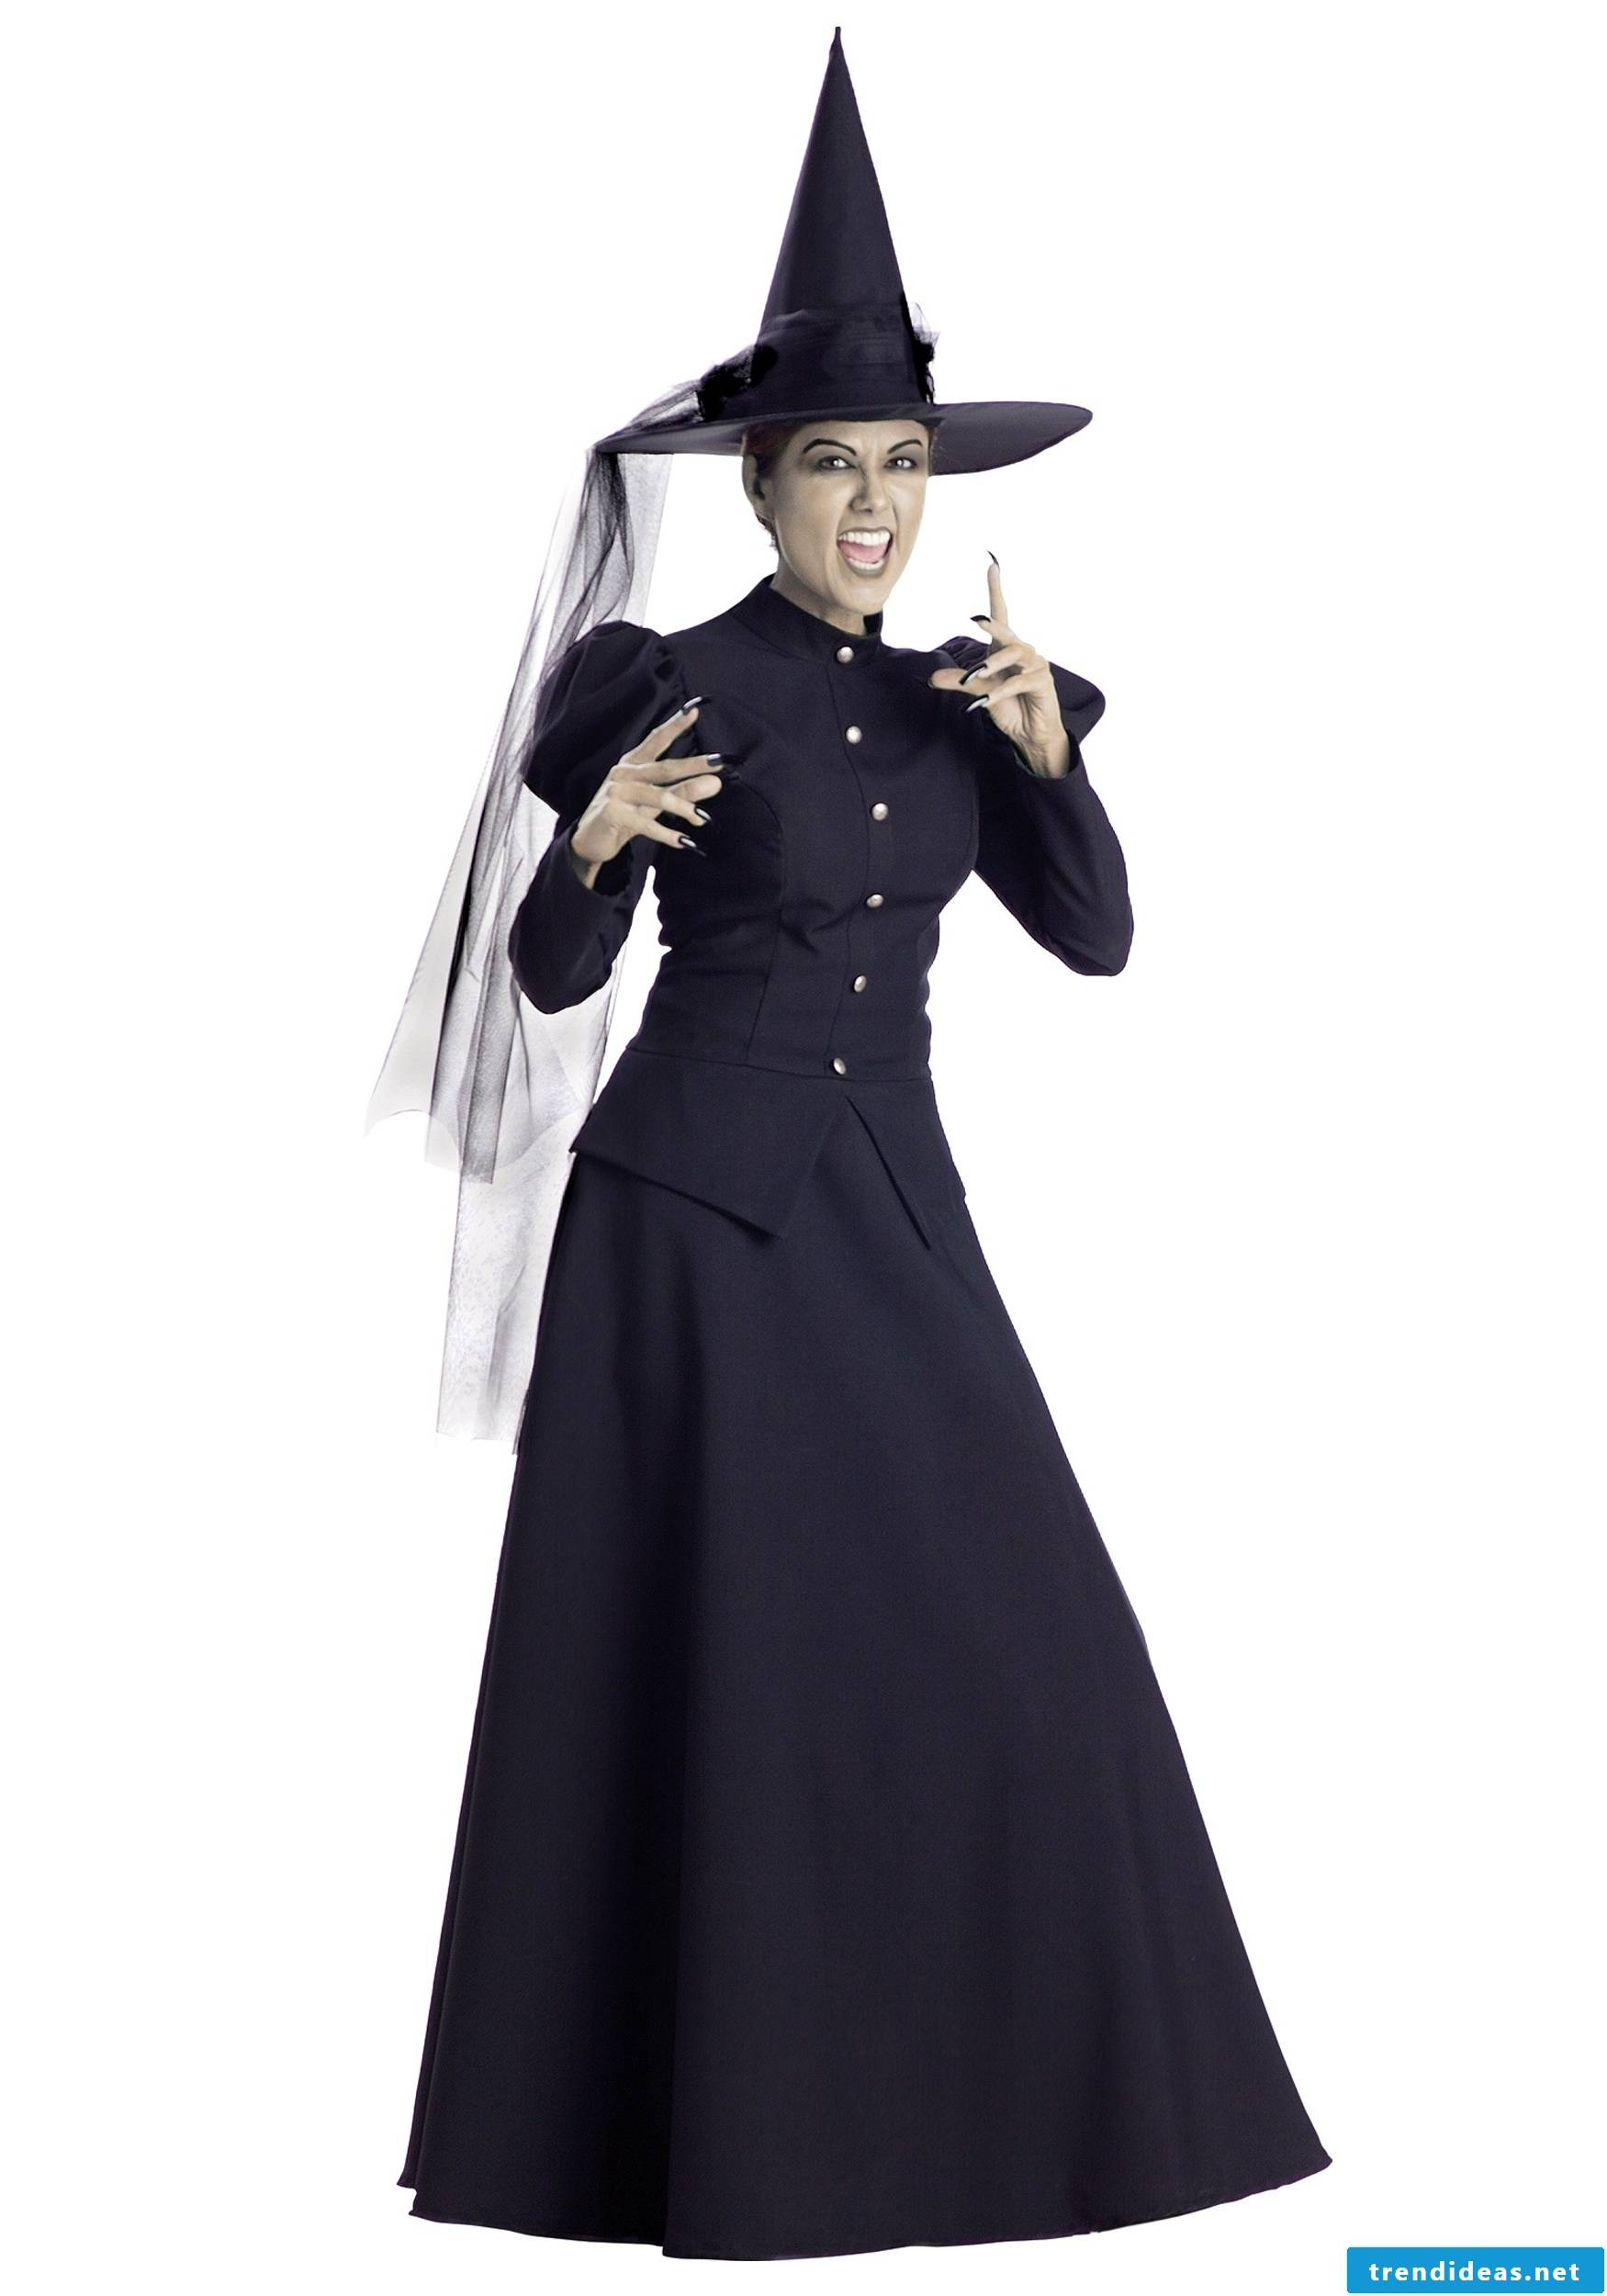 Witch costume can also look good